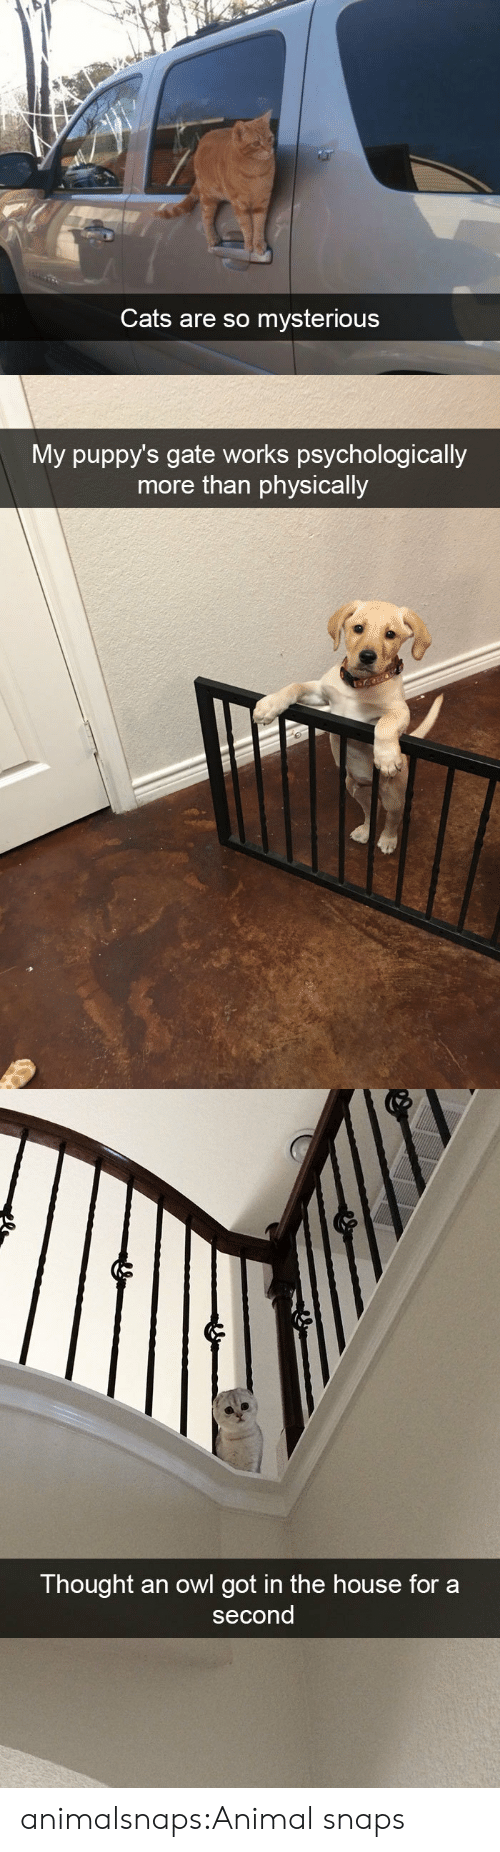 Cats, Target, and Tumblr: Cats are so mysterious   My puppy's gate works psychologically  more than physically   Thought an owl got in the house for a  second animalsnaps:Animal snaps